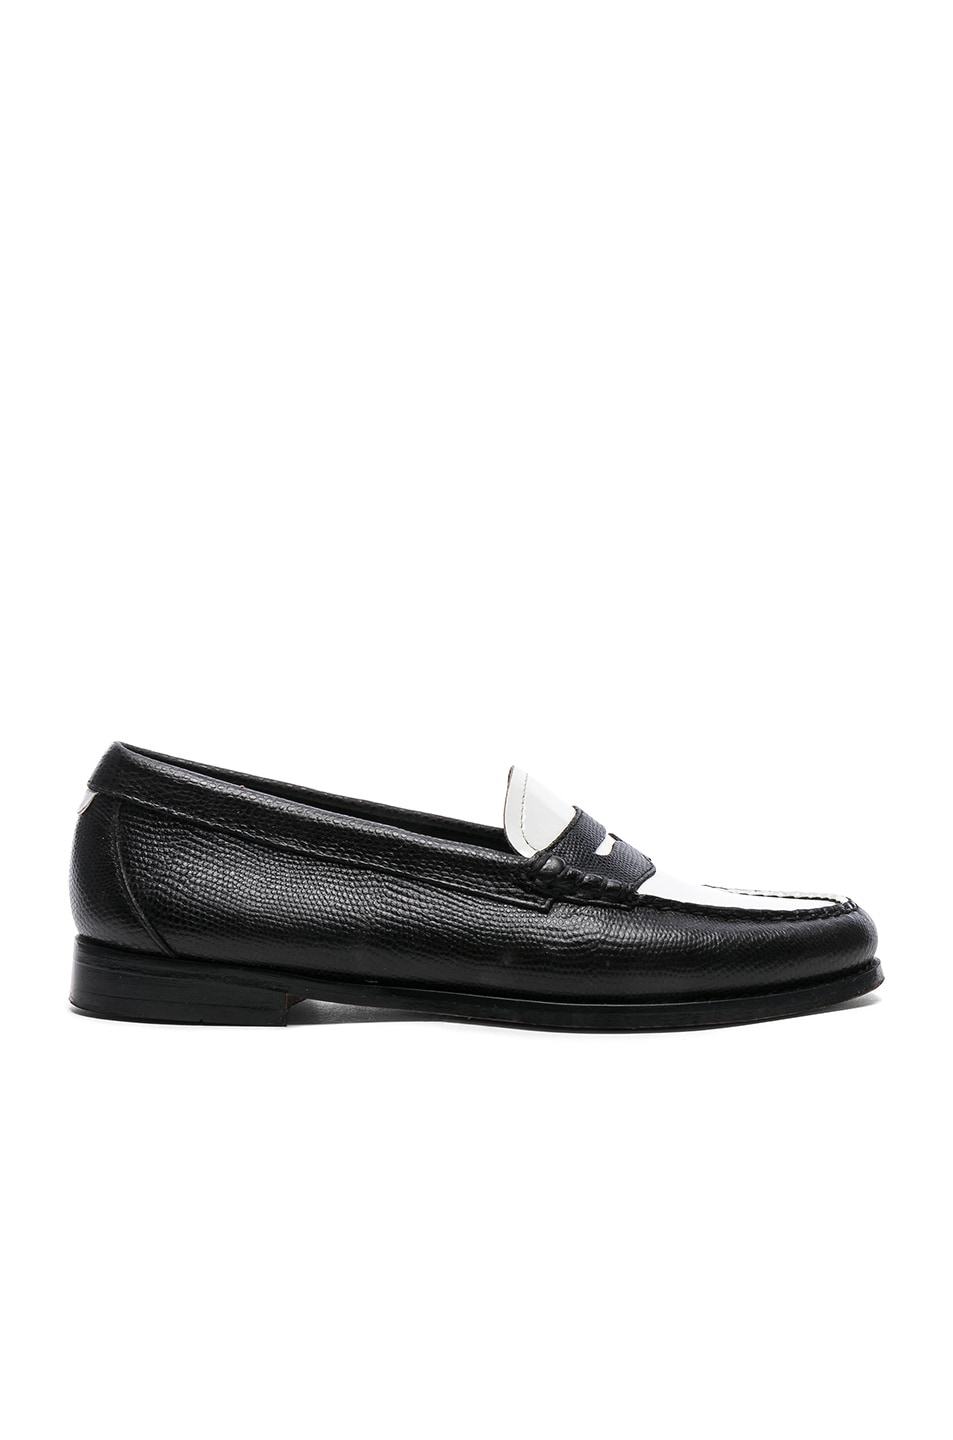 Image 1 of RE/DONE x G.H. Bass & Co. Whitney Loafer in White Patent Plug and Black Lizard Emboss